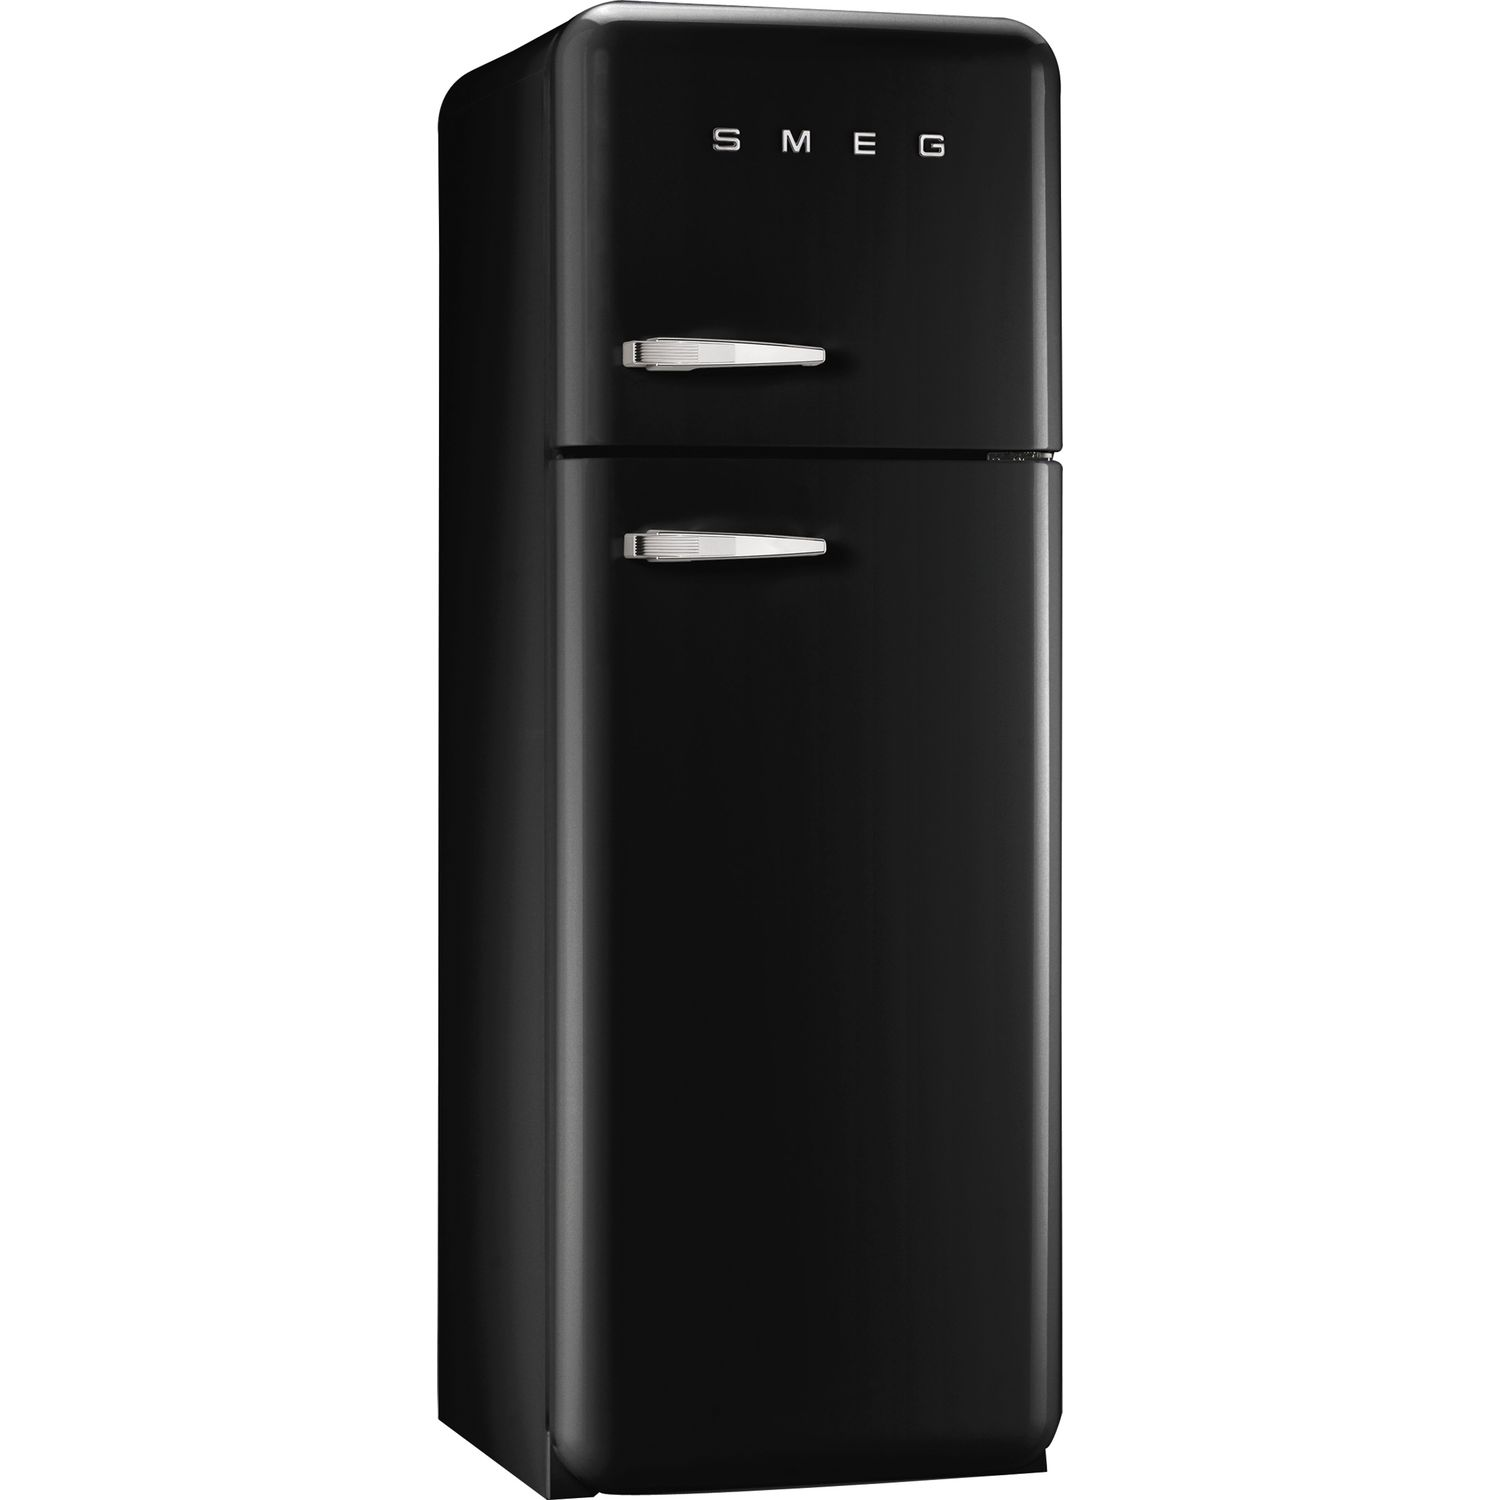 smeg k hl gefrierkombination fab30lne1 a schwarz linksanschlag. Black Bedroom Furniture Sets. Home Design Ideas